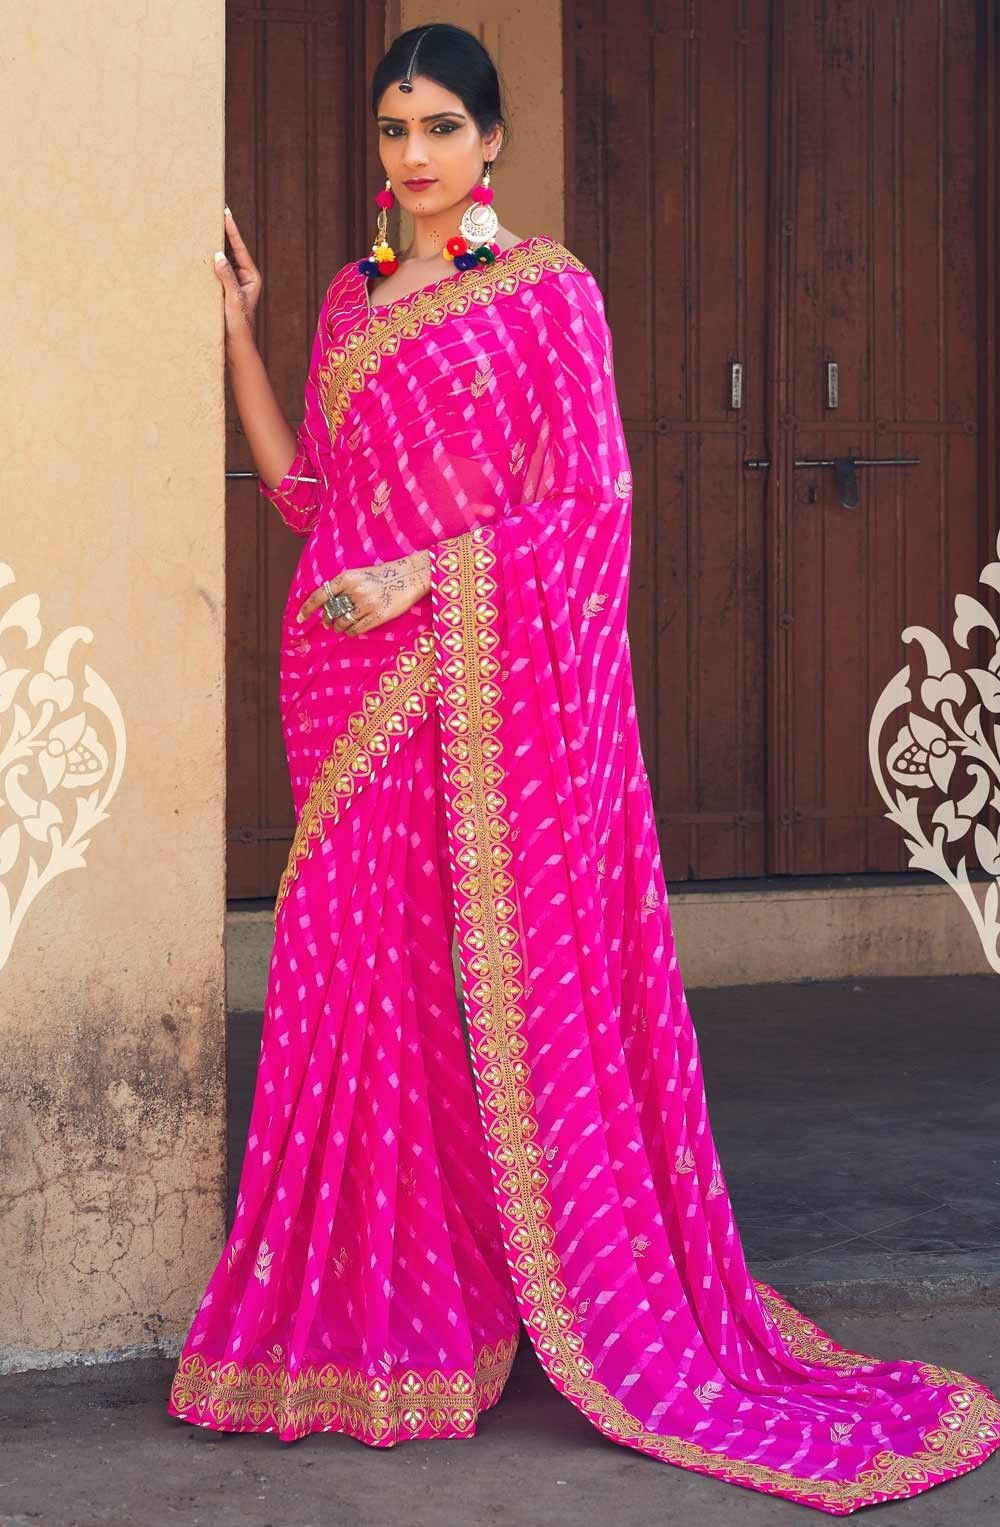 Pink Saree: Hot Pink Georgette Bandhni Saree With Gota Border Work For